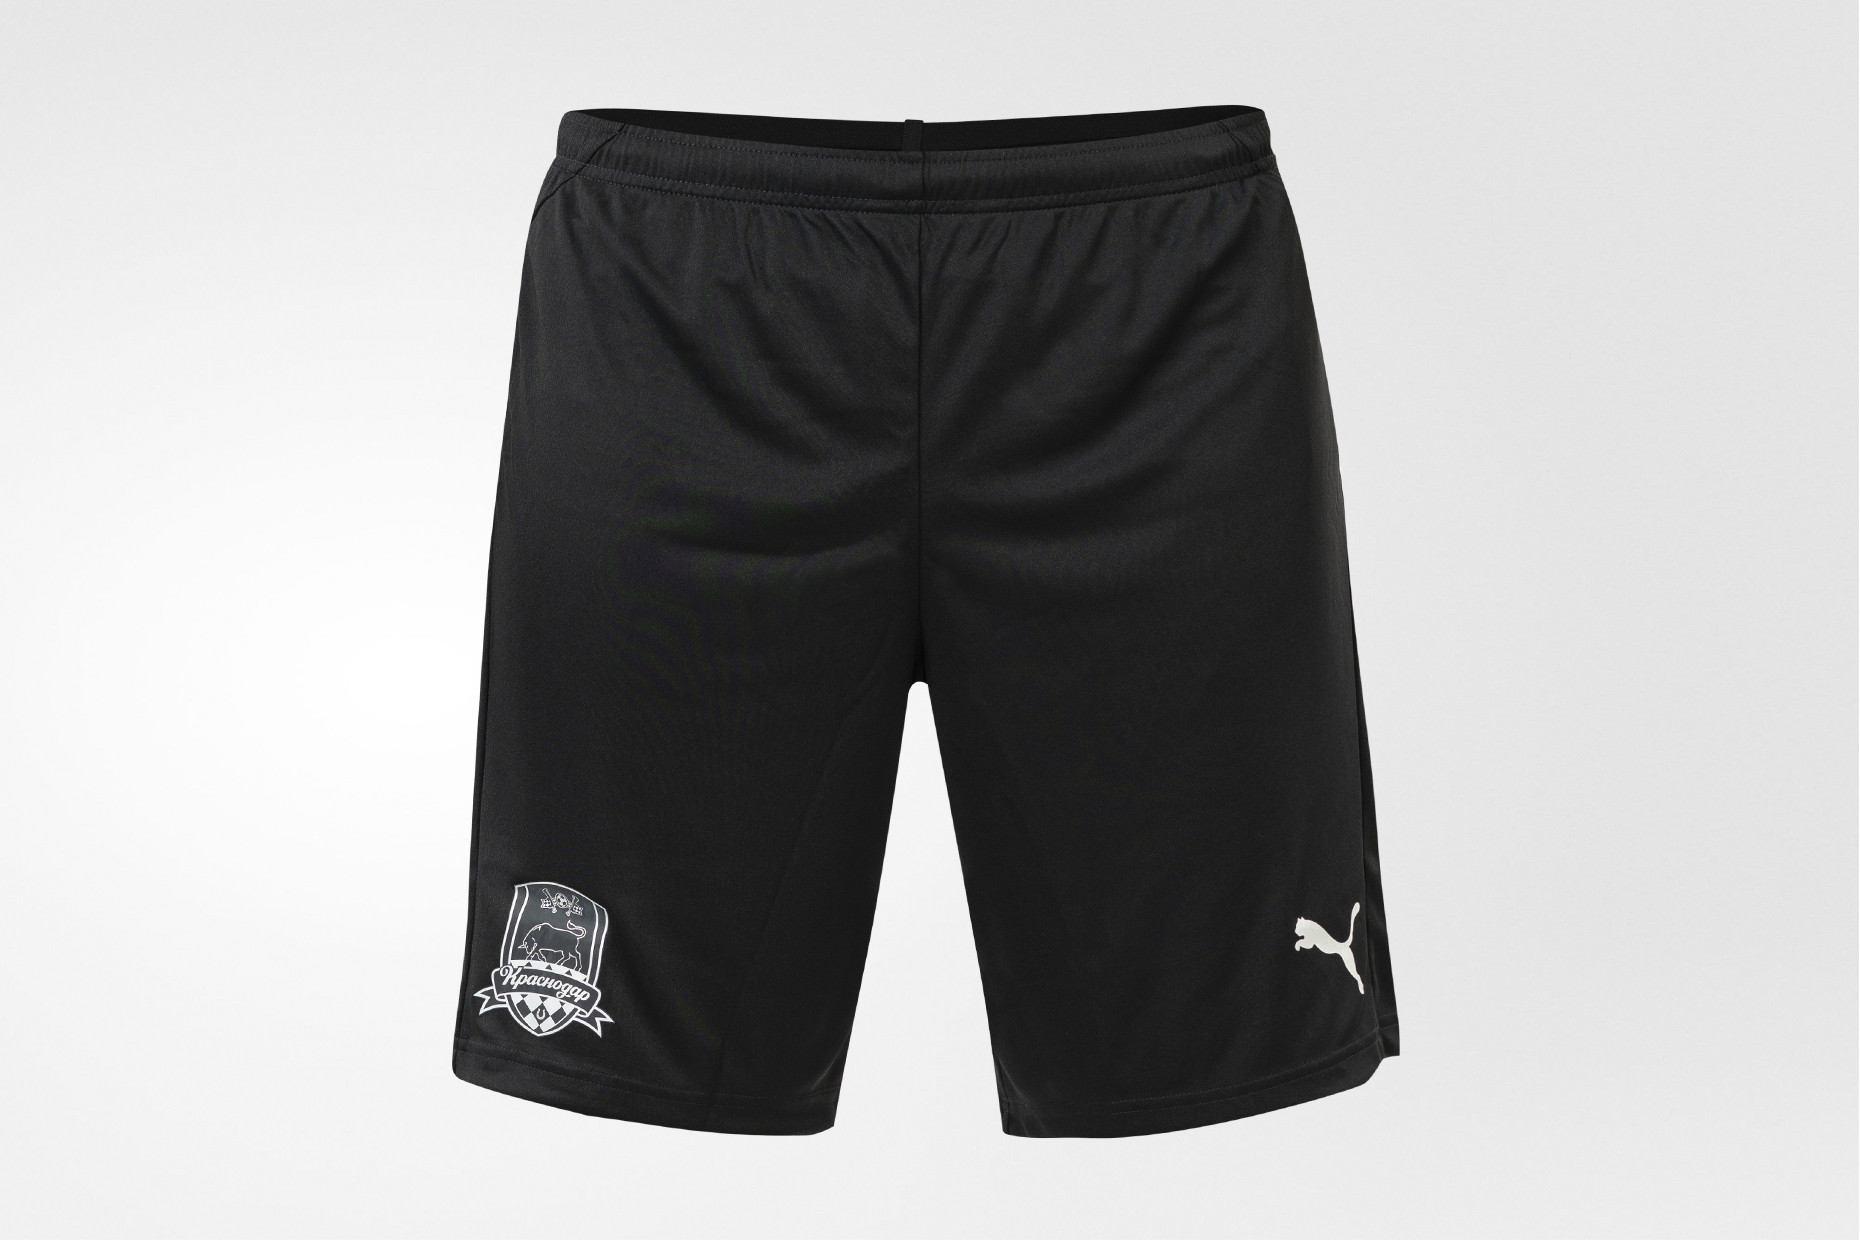 a0c477e3ff0f Шорты Puma FC Krasnodar Training Shorts